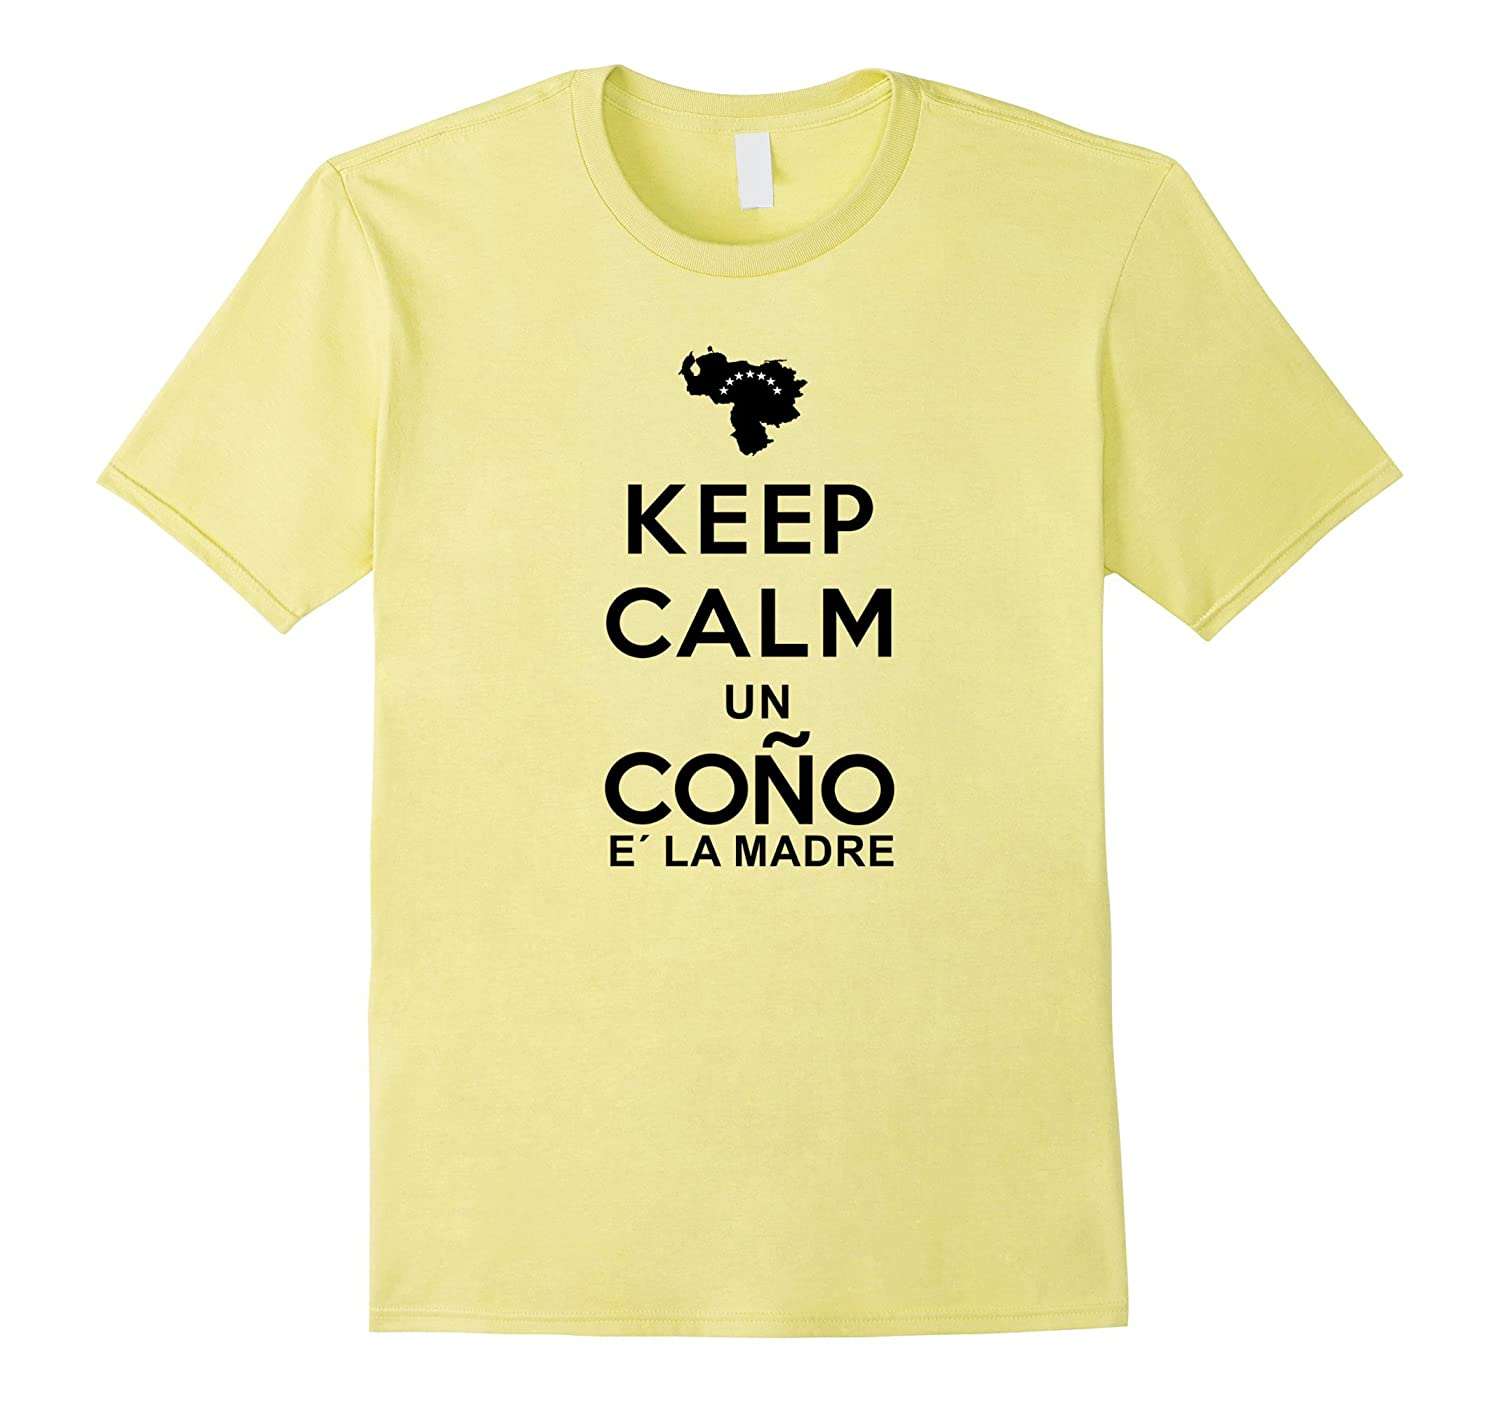 VENEZUELA KEEP CALM MAP SEVEN STAR SHIRT-FL on map of guiana, map of bahamas, map of south america, map of world, map of colombia, map of nicaragua, map of honduras, map of ecuador, map of canada, map of aruba, map of switzerland, map of puerto rico, map of romania, map of paraguay, map of yemen, map of caracas, map of bolivia, map of greece, map of bonaire,